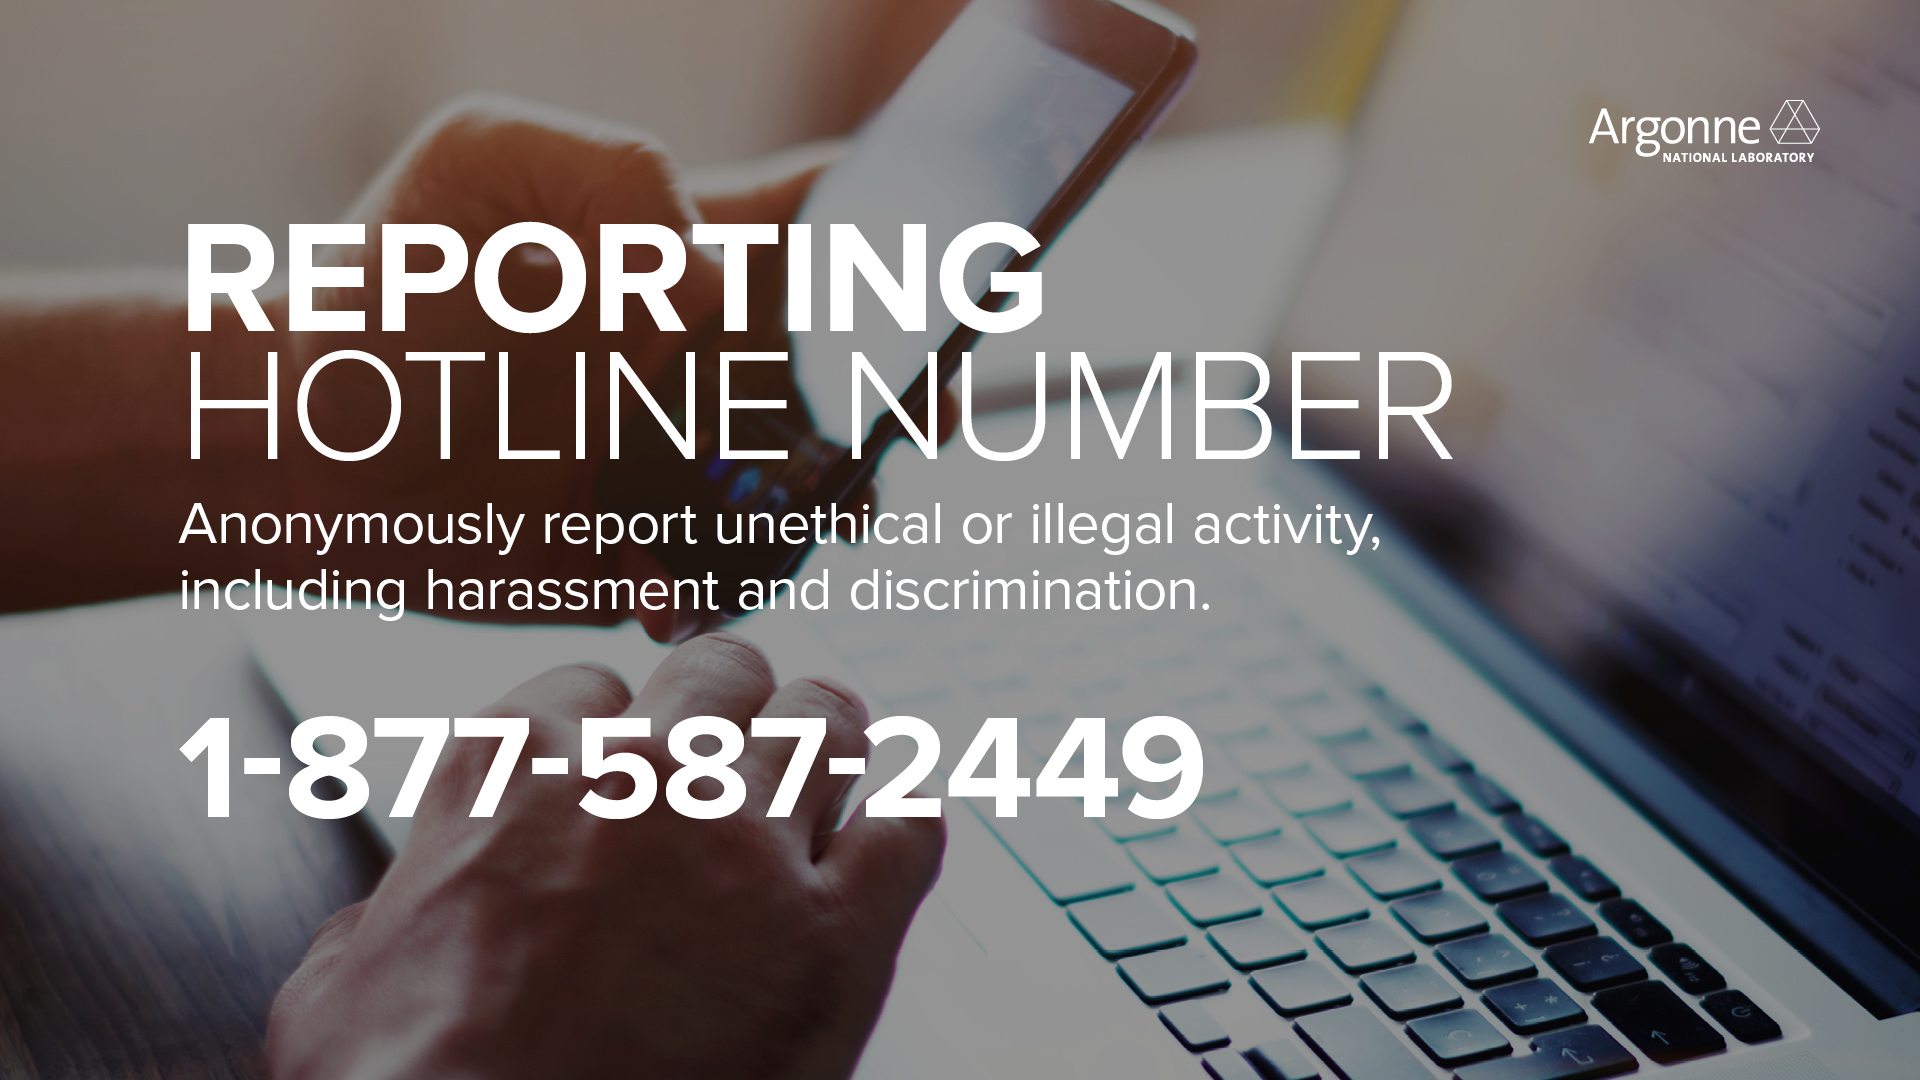 Reporting Unethical or Illegal Activity | Argonne National